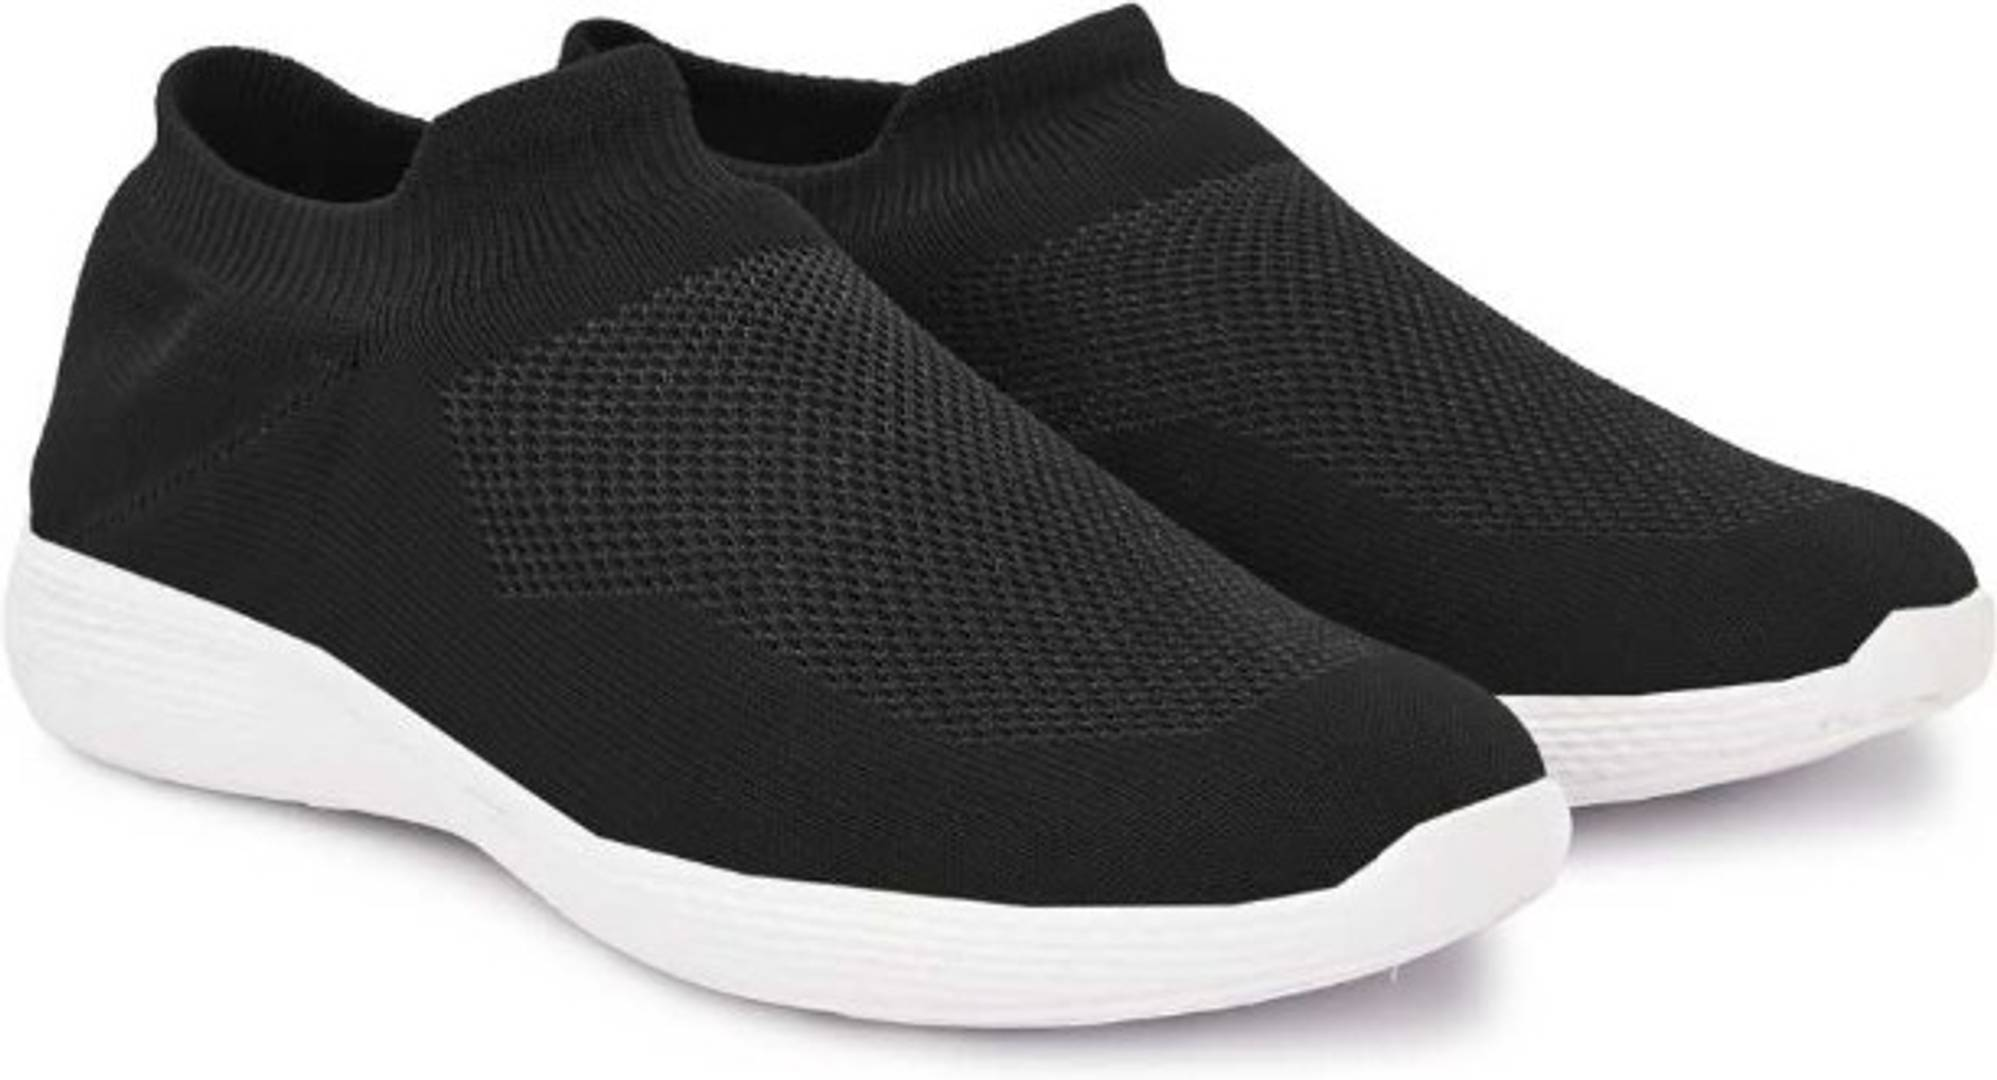 Light Weight Solid Black Mesh Sport Shoes for Men